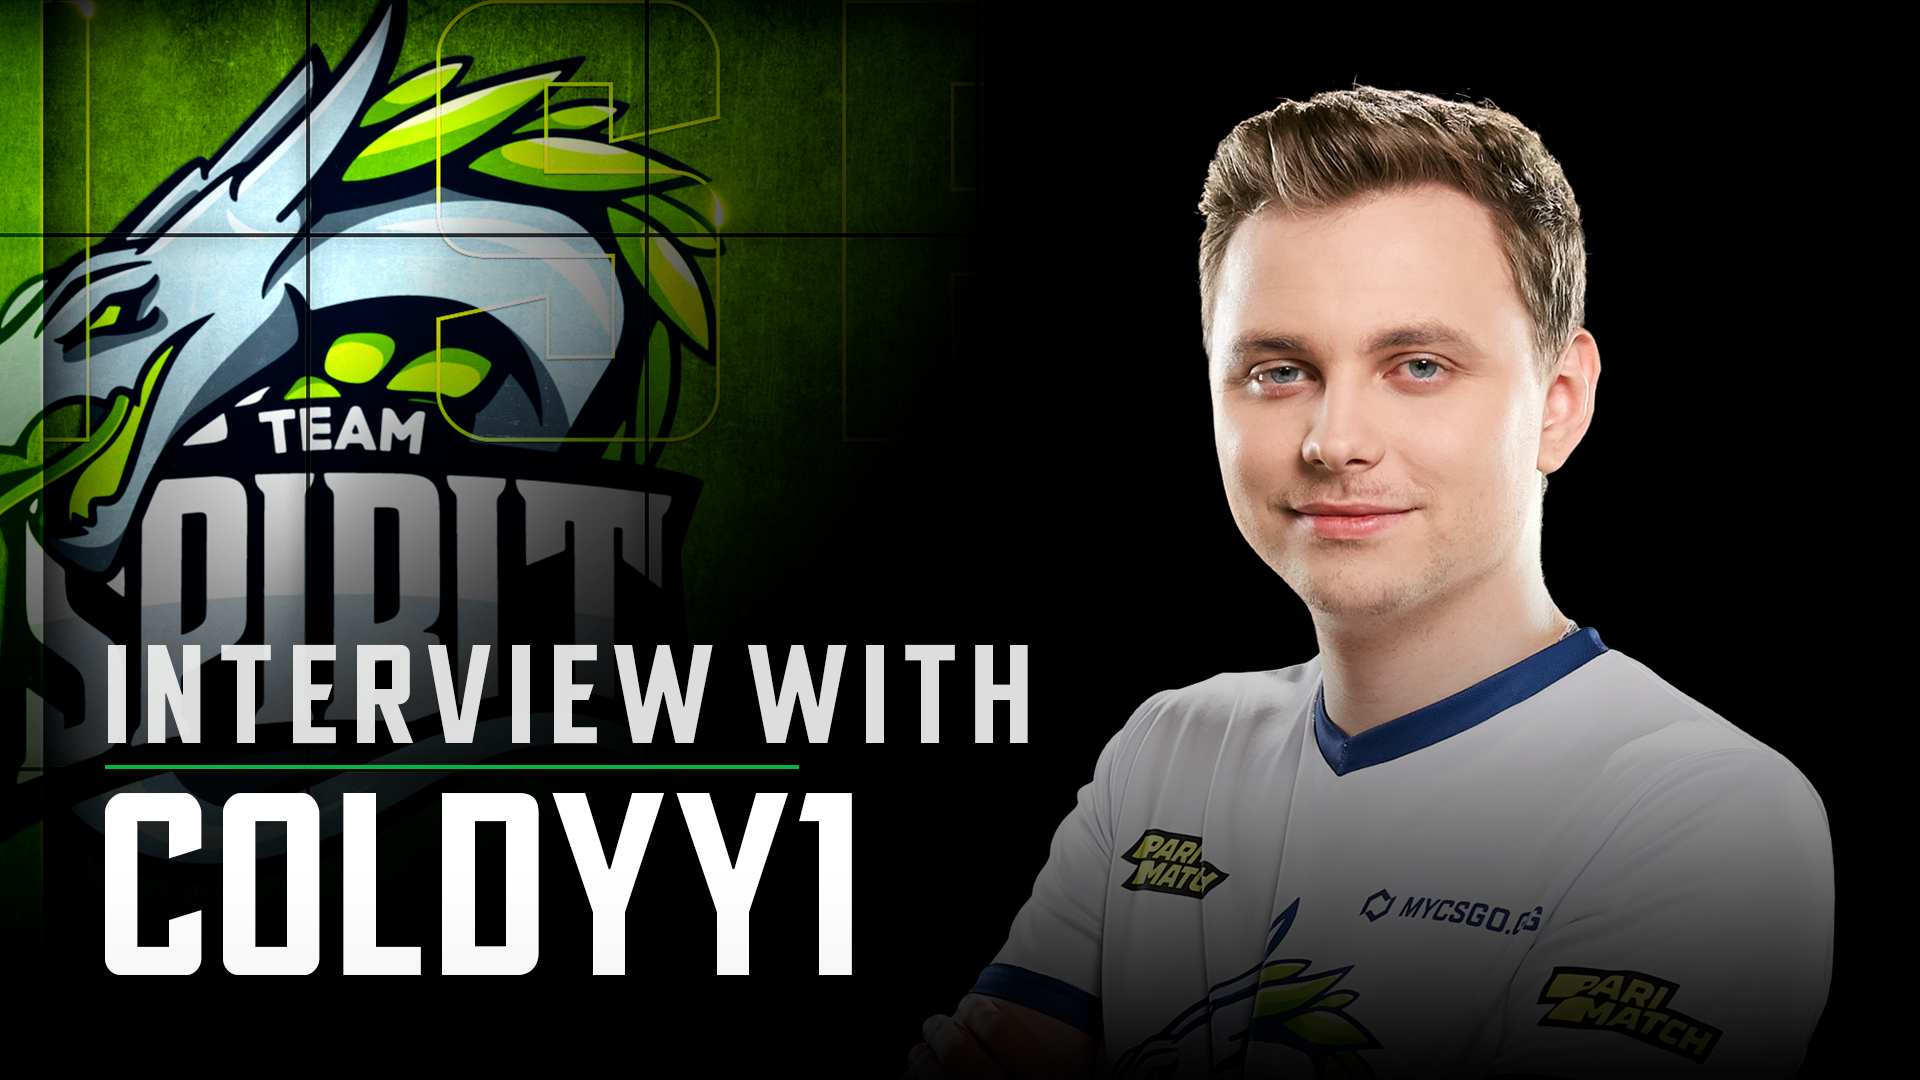 #BerlinMinor2019 | Interview with COLDYY1 from Team Spirit